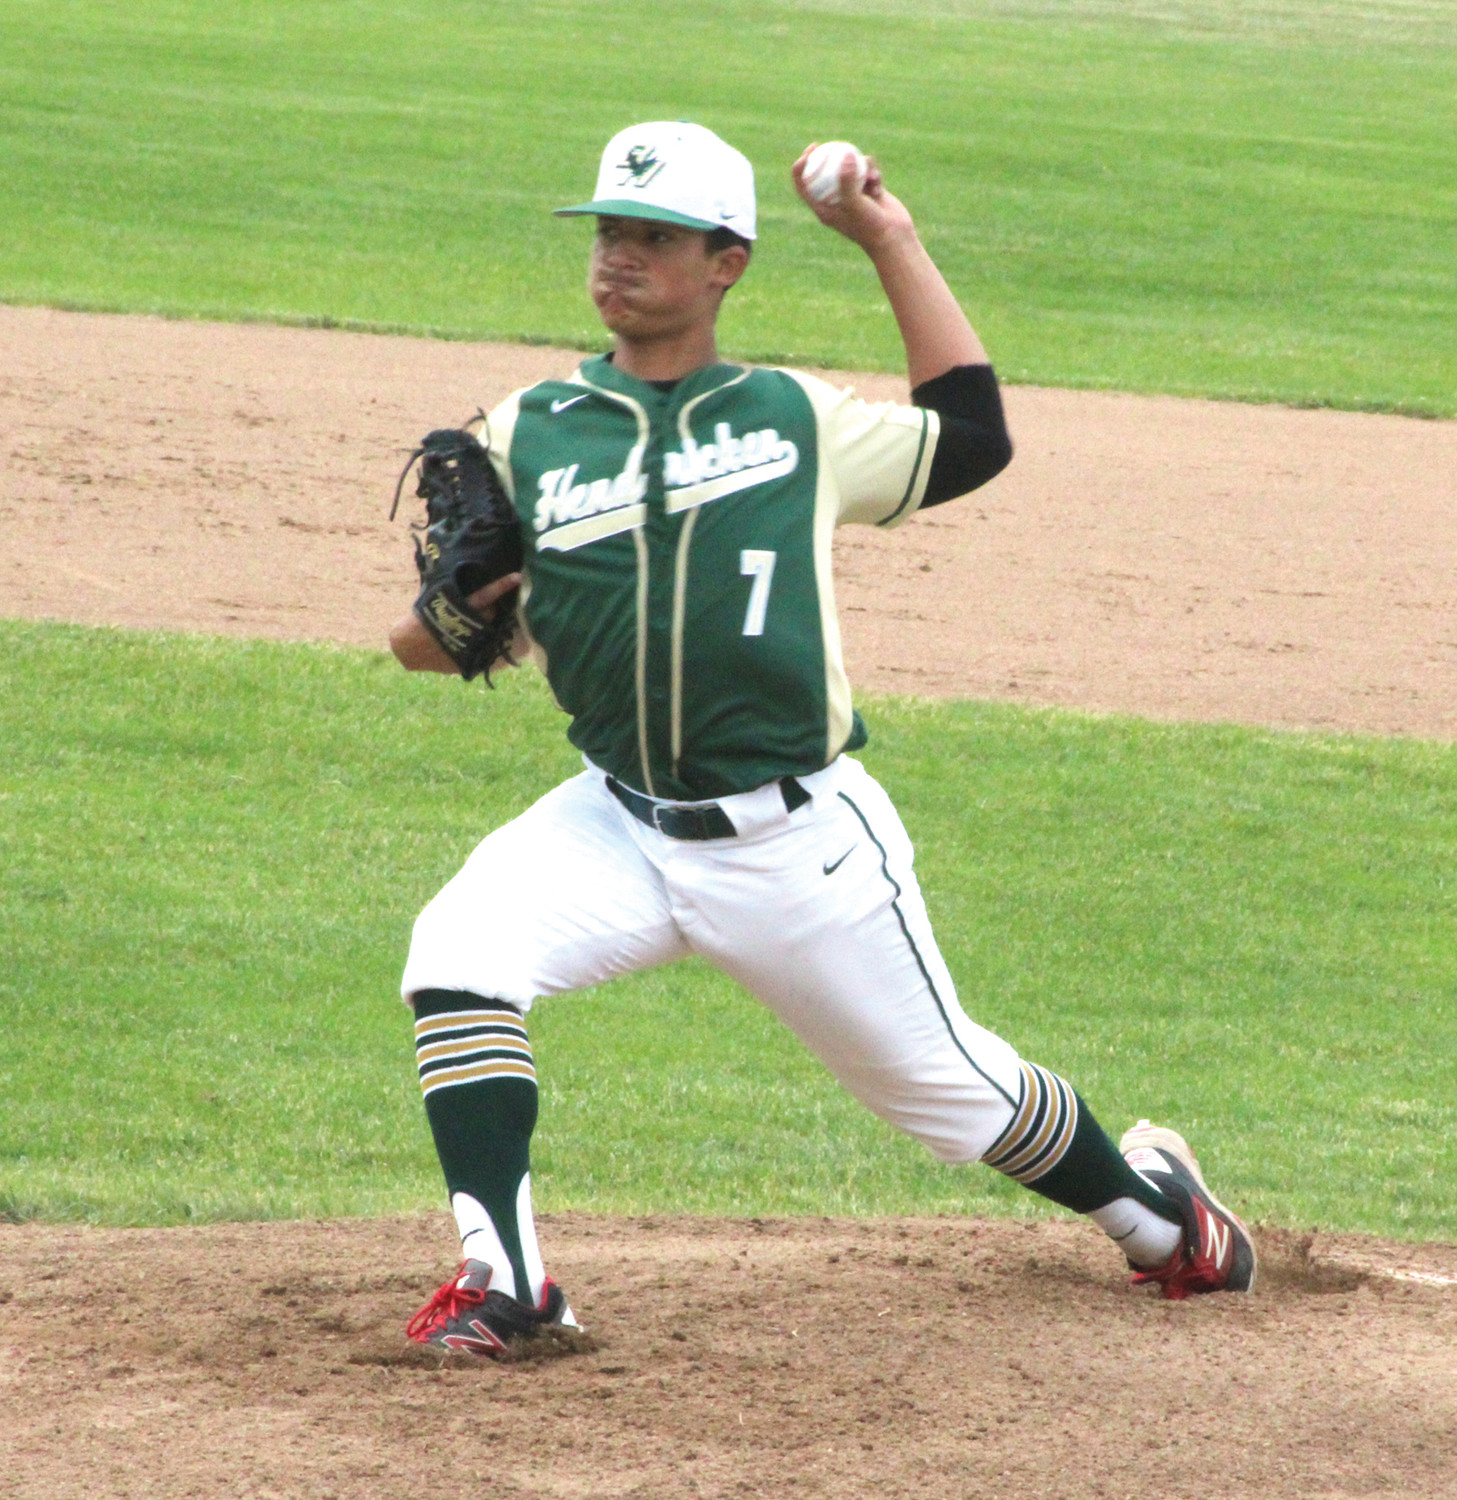 PLAYOFF BASEBALL: Bishop Hendricken's Blake Roberge delivers a pitch.